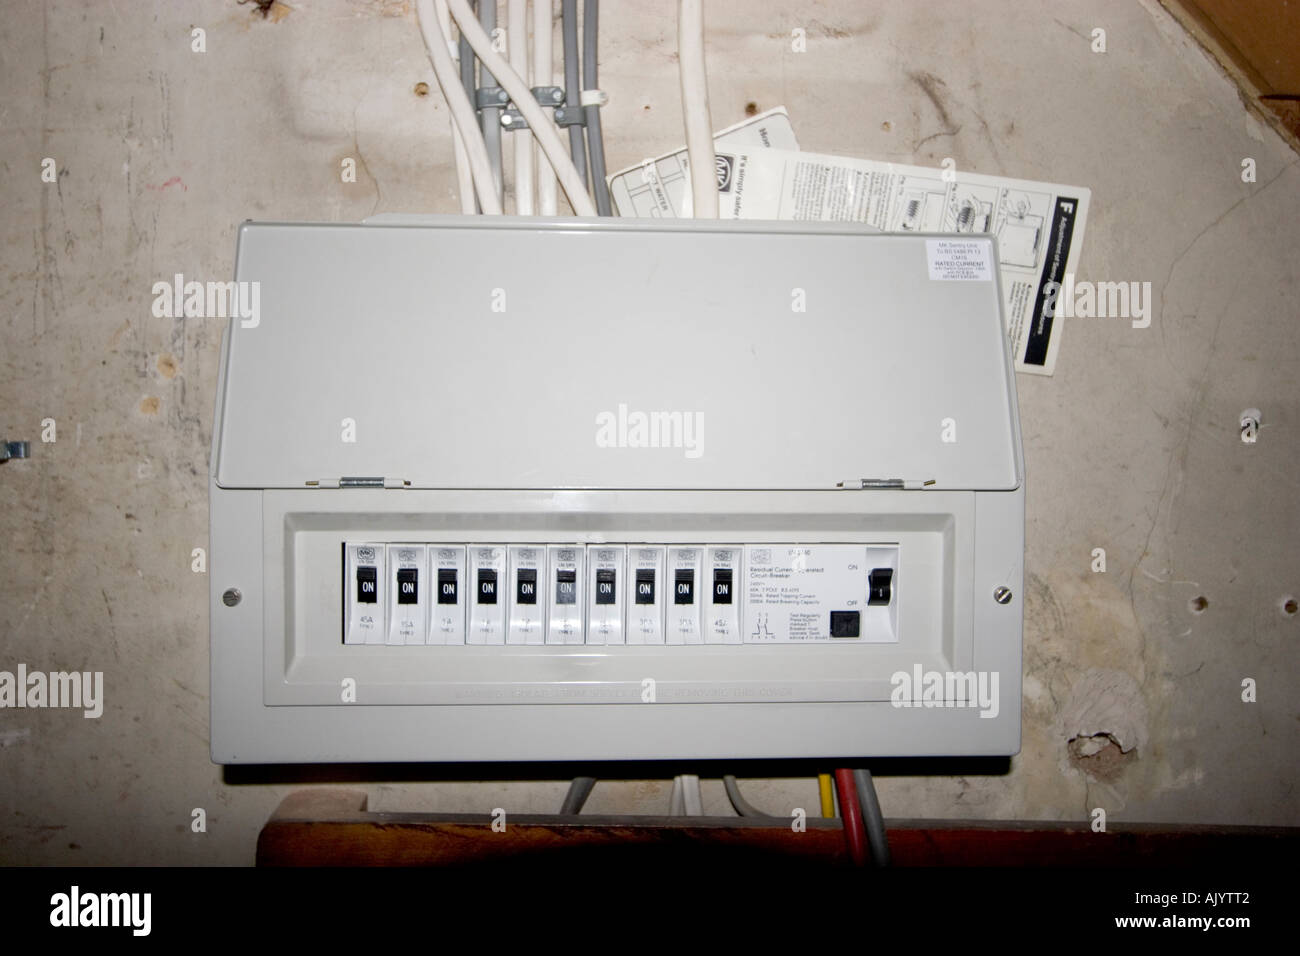 uk electrical fuse box under stairs of house AJYTT2 uk electrical fuse box under stairs of house stock photo, royalty fuse box in house at aneh.co